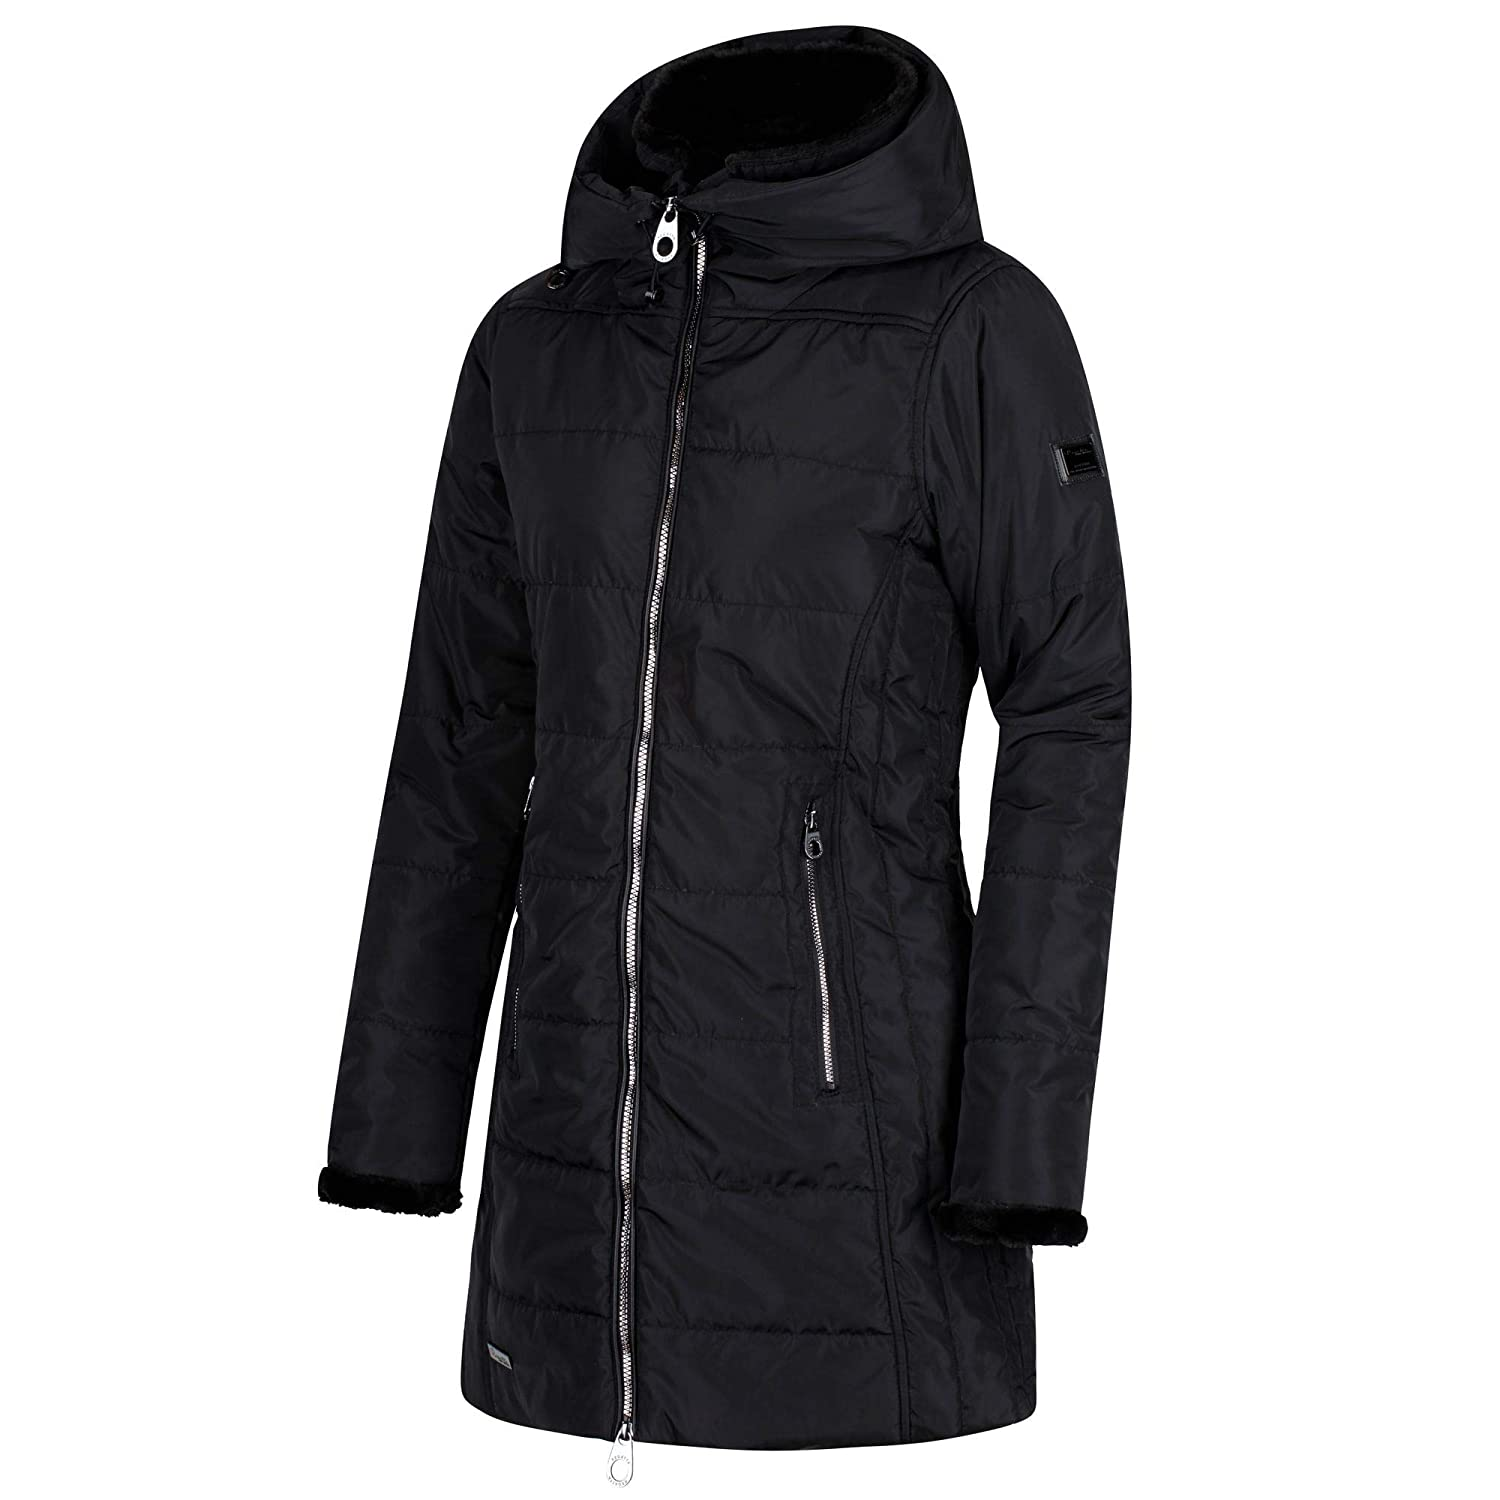 55d00598f65 Regatta Women s Pernella Water Repellent Insulated and Lined Zip-down Hooded  Jacket  Amazon.co.uk  Sports   Outdoors